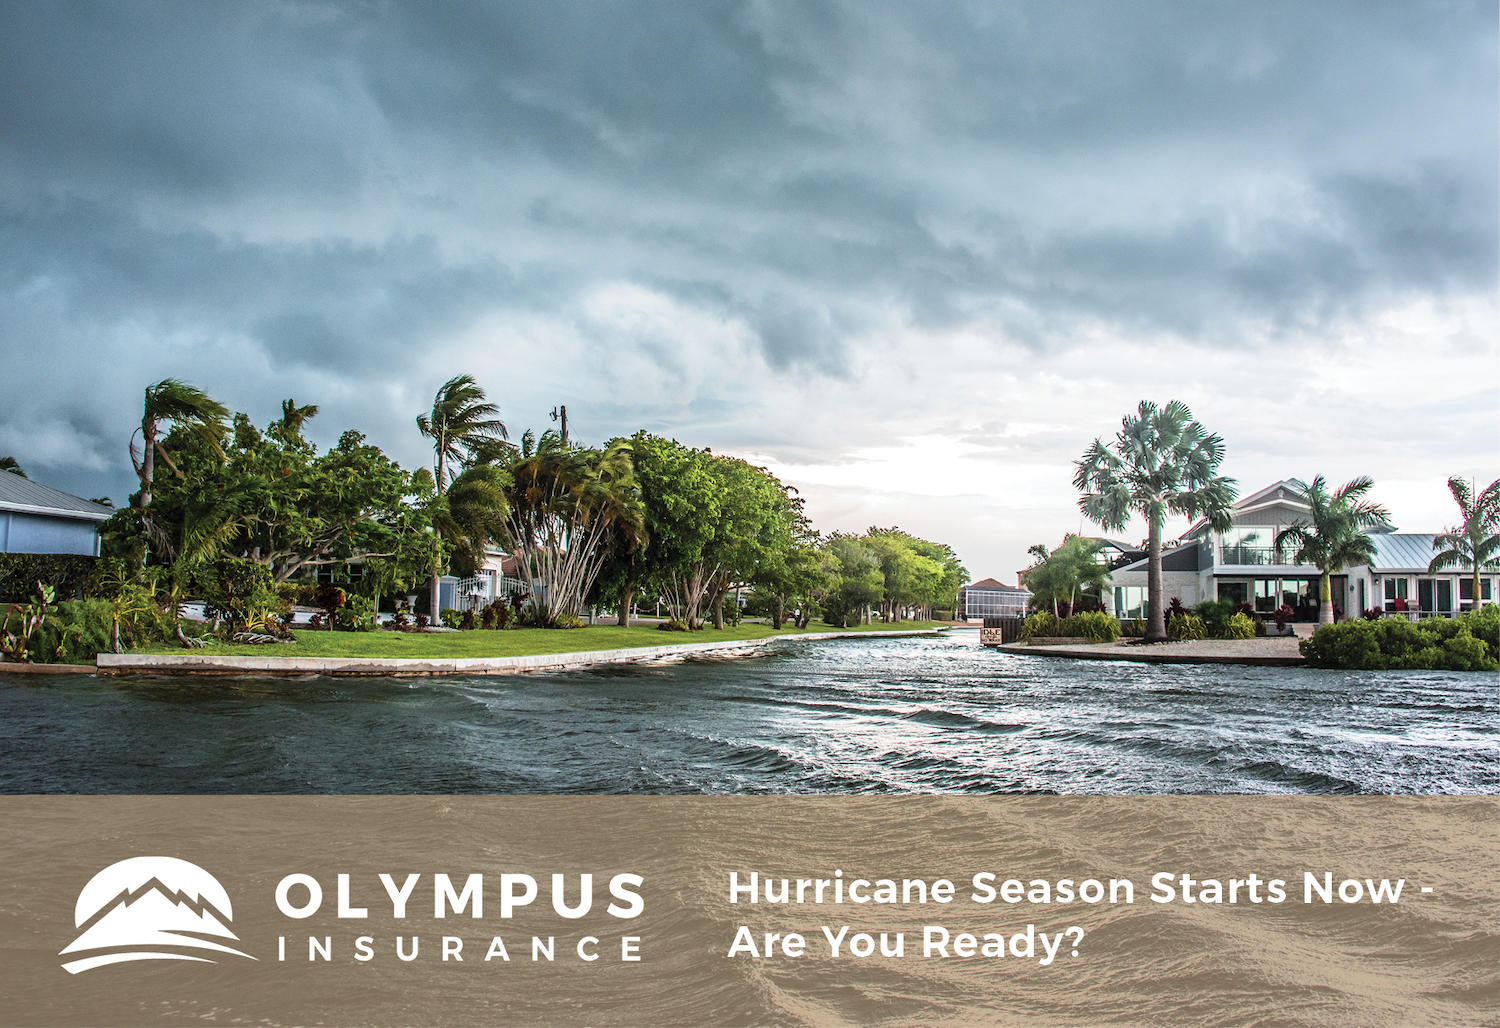 Hurricane Season Starts Now - Are You Ready?